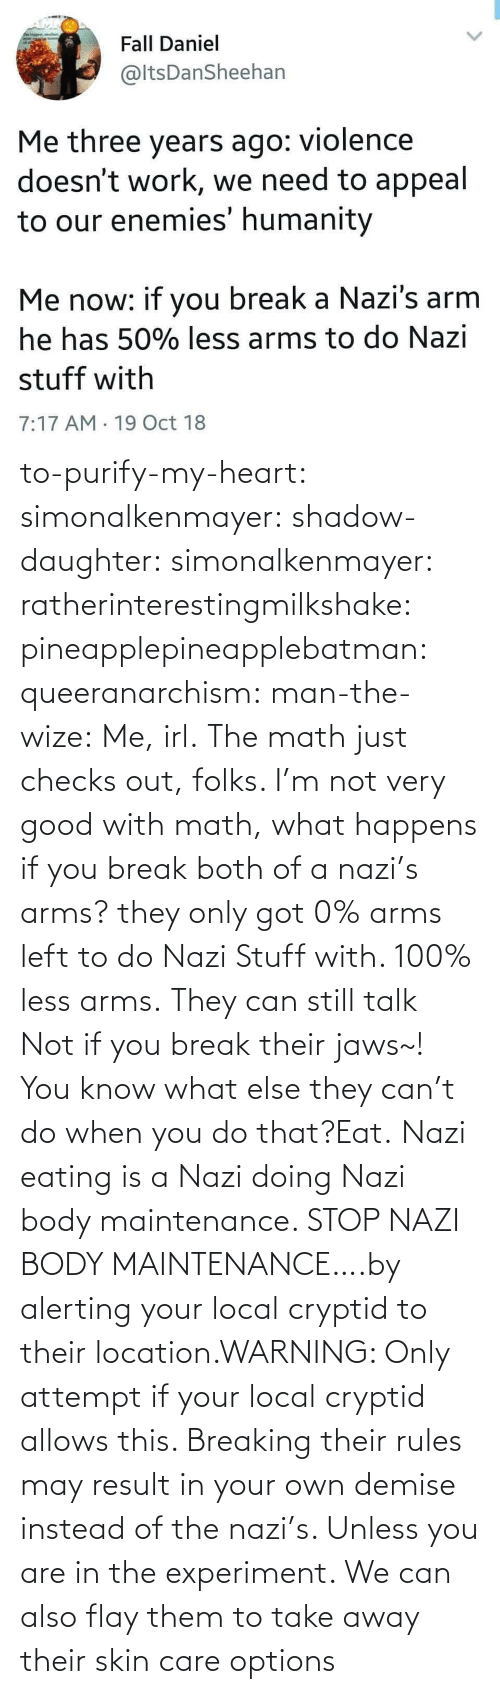 your own: to-purify-my-heart:  simonalkenmayer:  shadow-daughter: simonalkenmayer:  ratherinterestingmilkshake:  pineapplepineapplebatman:  queeranarchism:  man-the-wize: Me, irl. The math just checks out, folks.     I'm not very good with math, what happens if you break both of a nazi's arms?  they only got 0% arms left to do Nazi Stuff with. 100% less arms.  They can still talk  Not if you break their jaws~!  You know what else they can't do when you do that?Eat.   Nazi eating is a Nazi doing Nazi body maintenance. STOP NAZI BODY MAINTENANCE….by alerting your local cryptid to their location.WARNING: Only attempt if your local cryptid allows this. Breaking their rules may result in your own demise instead of the nazi's. Unless you are in the experiment.    We can also flay them to take away their skin care options